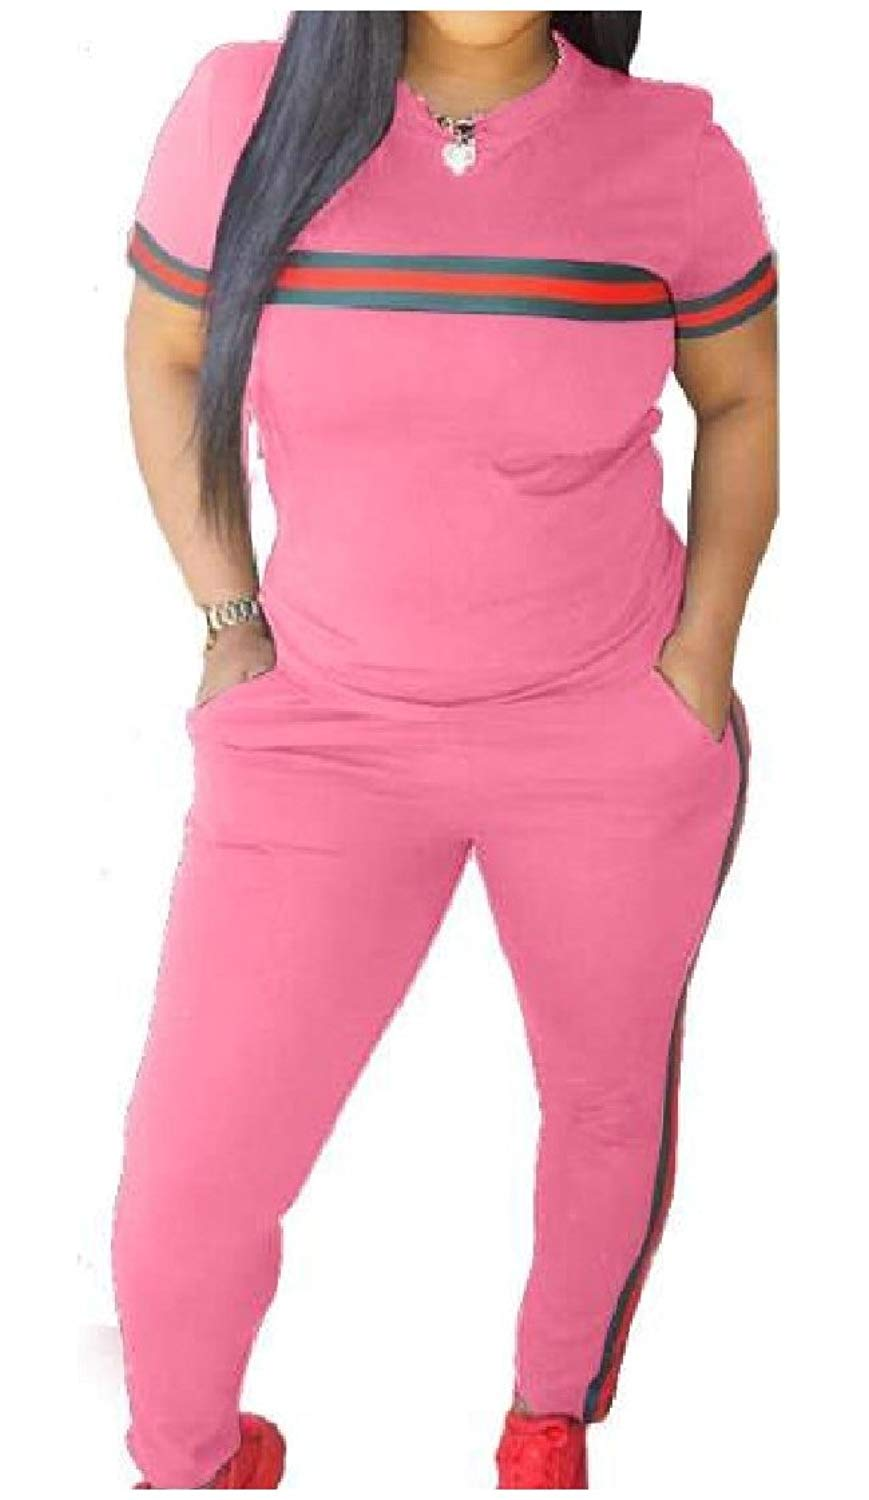 Coolred-Women Sports Cozy Casual Pants and Short-Sleeve T-Shirts Outfit